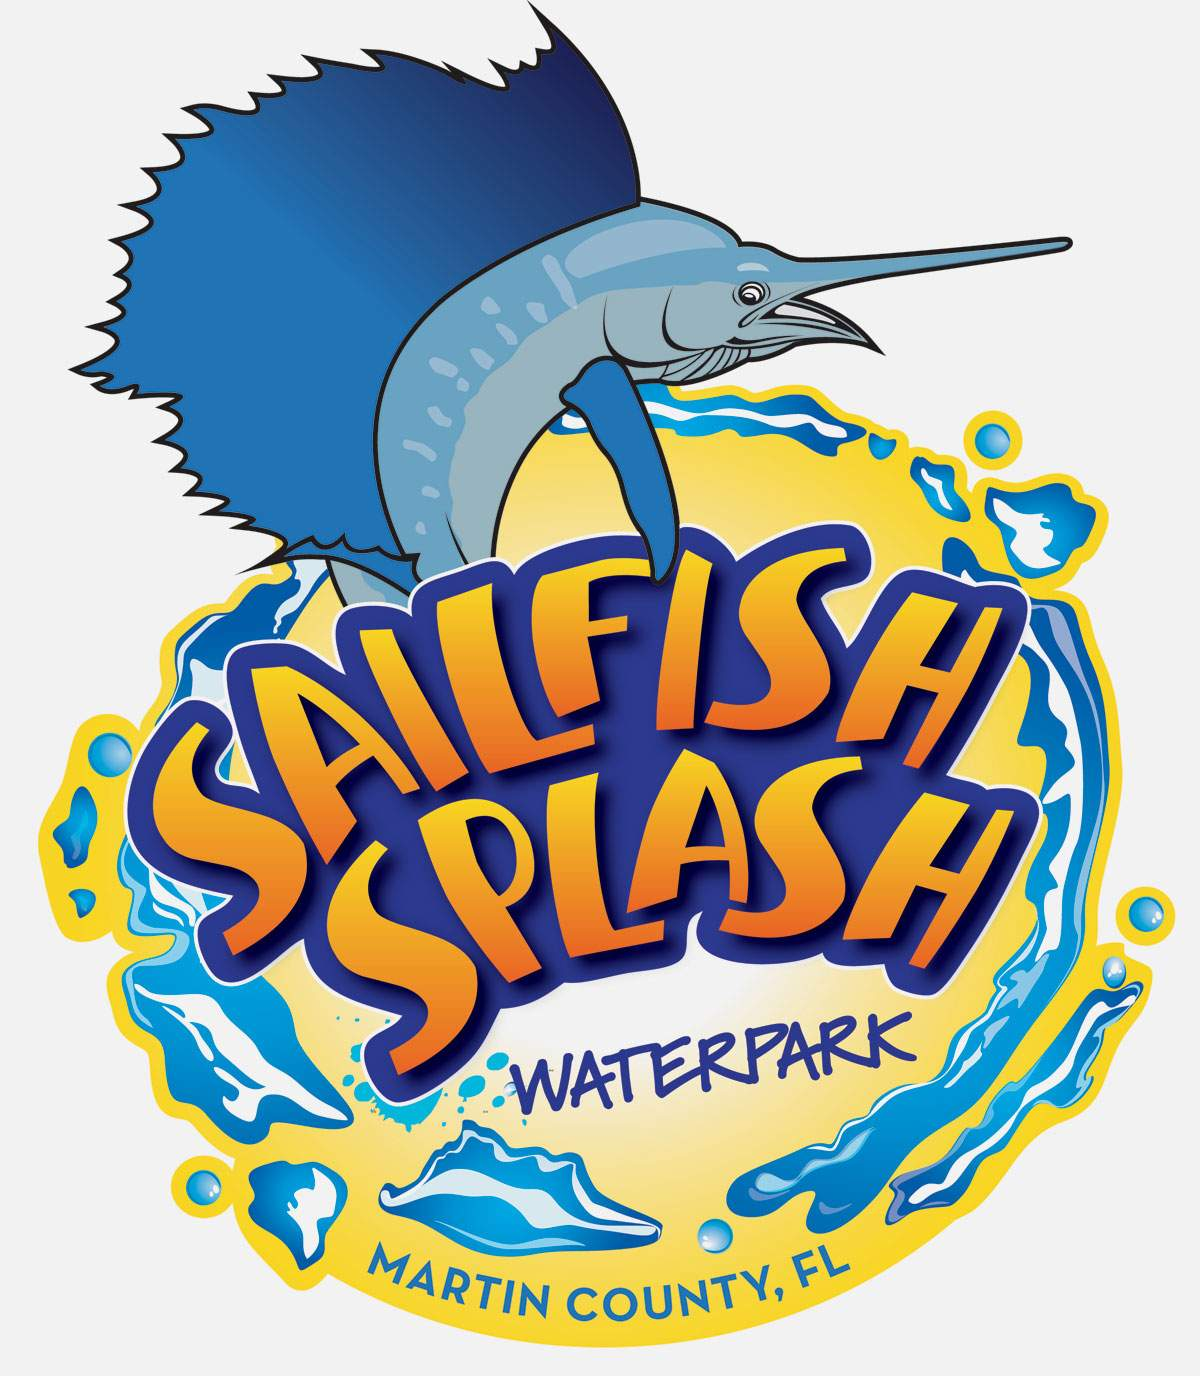 Sailfish Splash logo